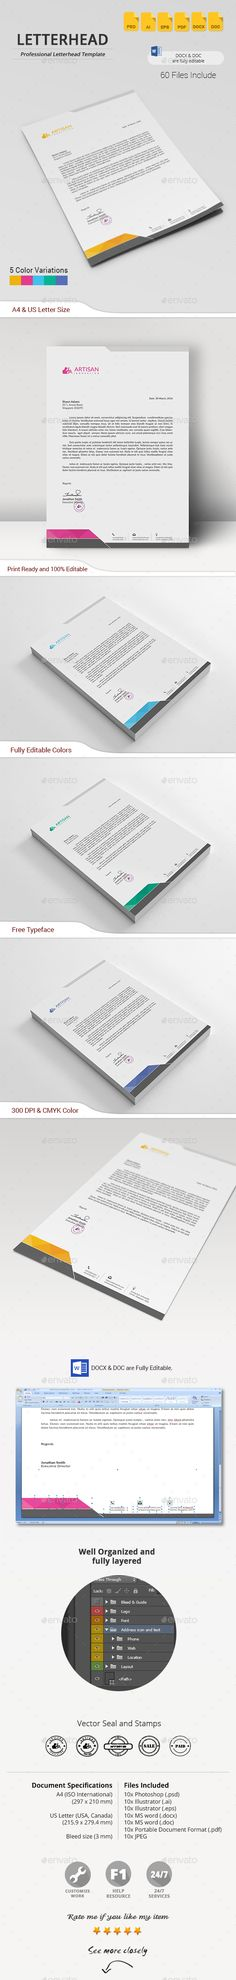 Letterhead Bundle Letterhead design, Templates and Design - company letterhead word template